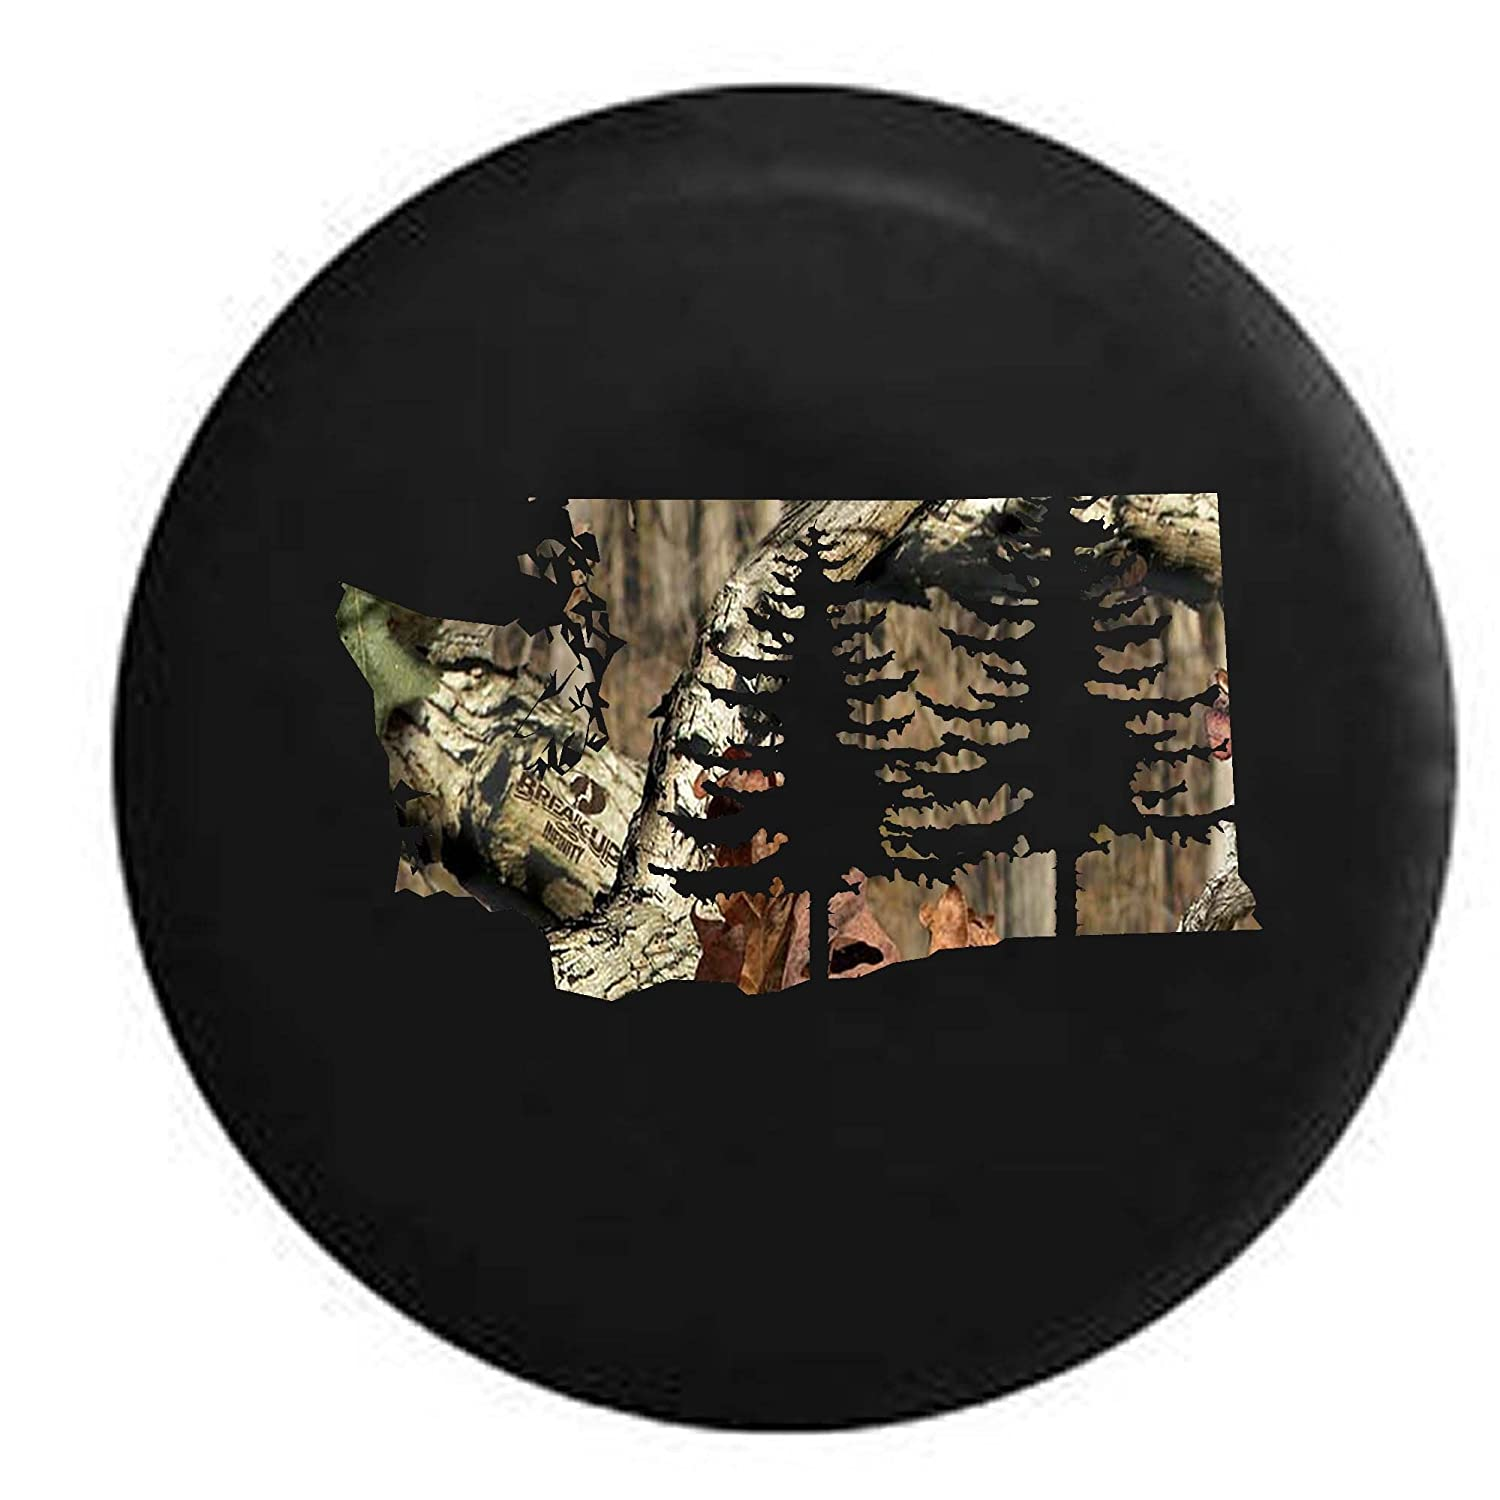 Pike Stealth Washington Pine Trees Home State Edition RV Spare Tire Cover OEM Vinyl Black 27.5 in Pike Outdoors